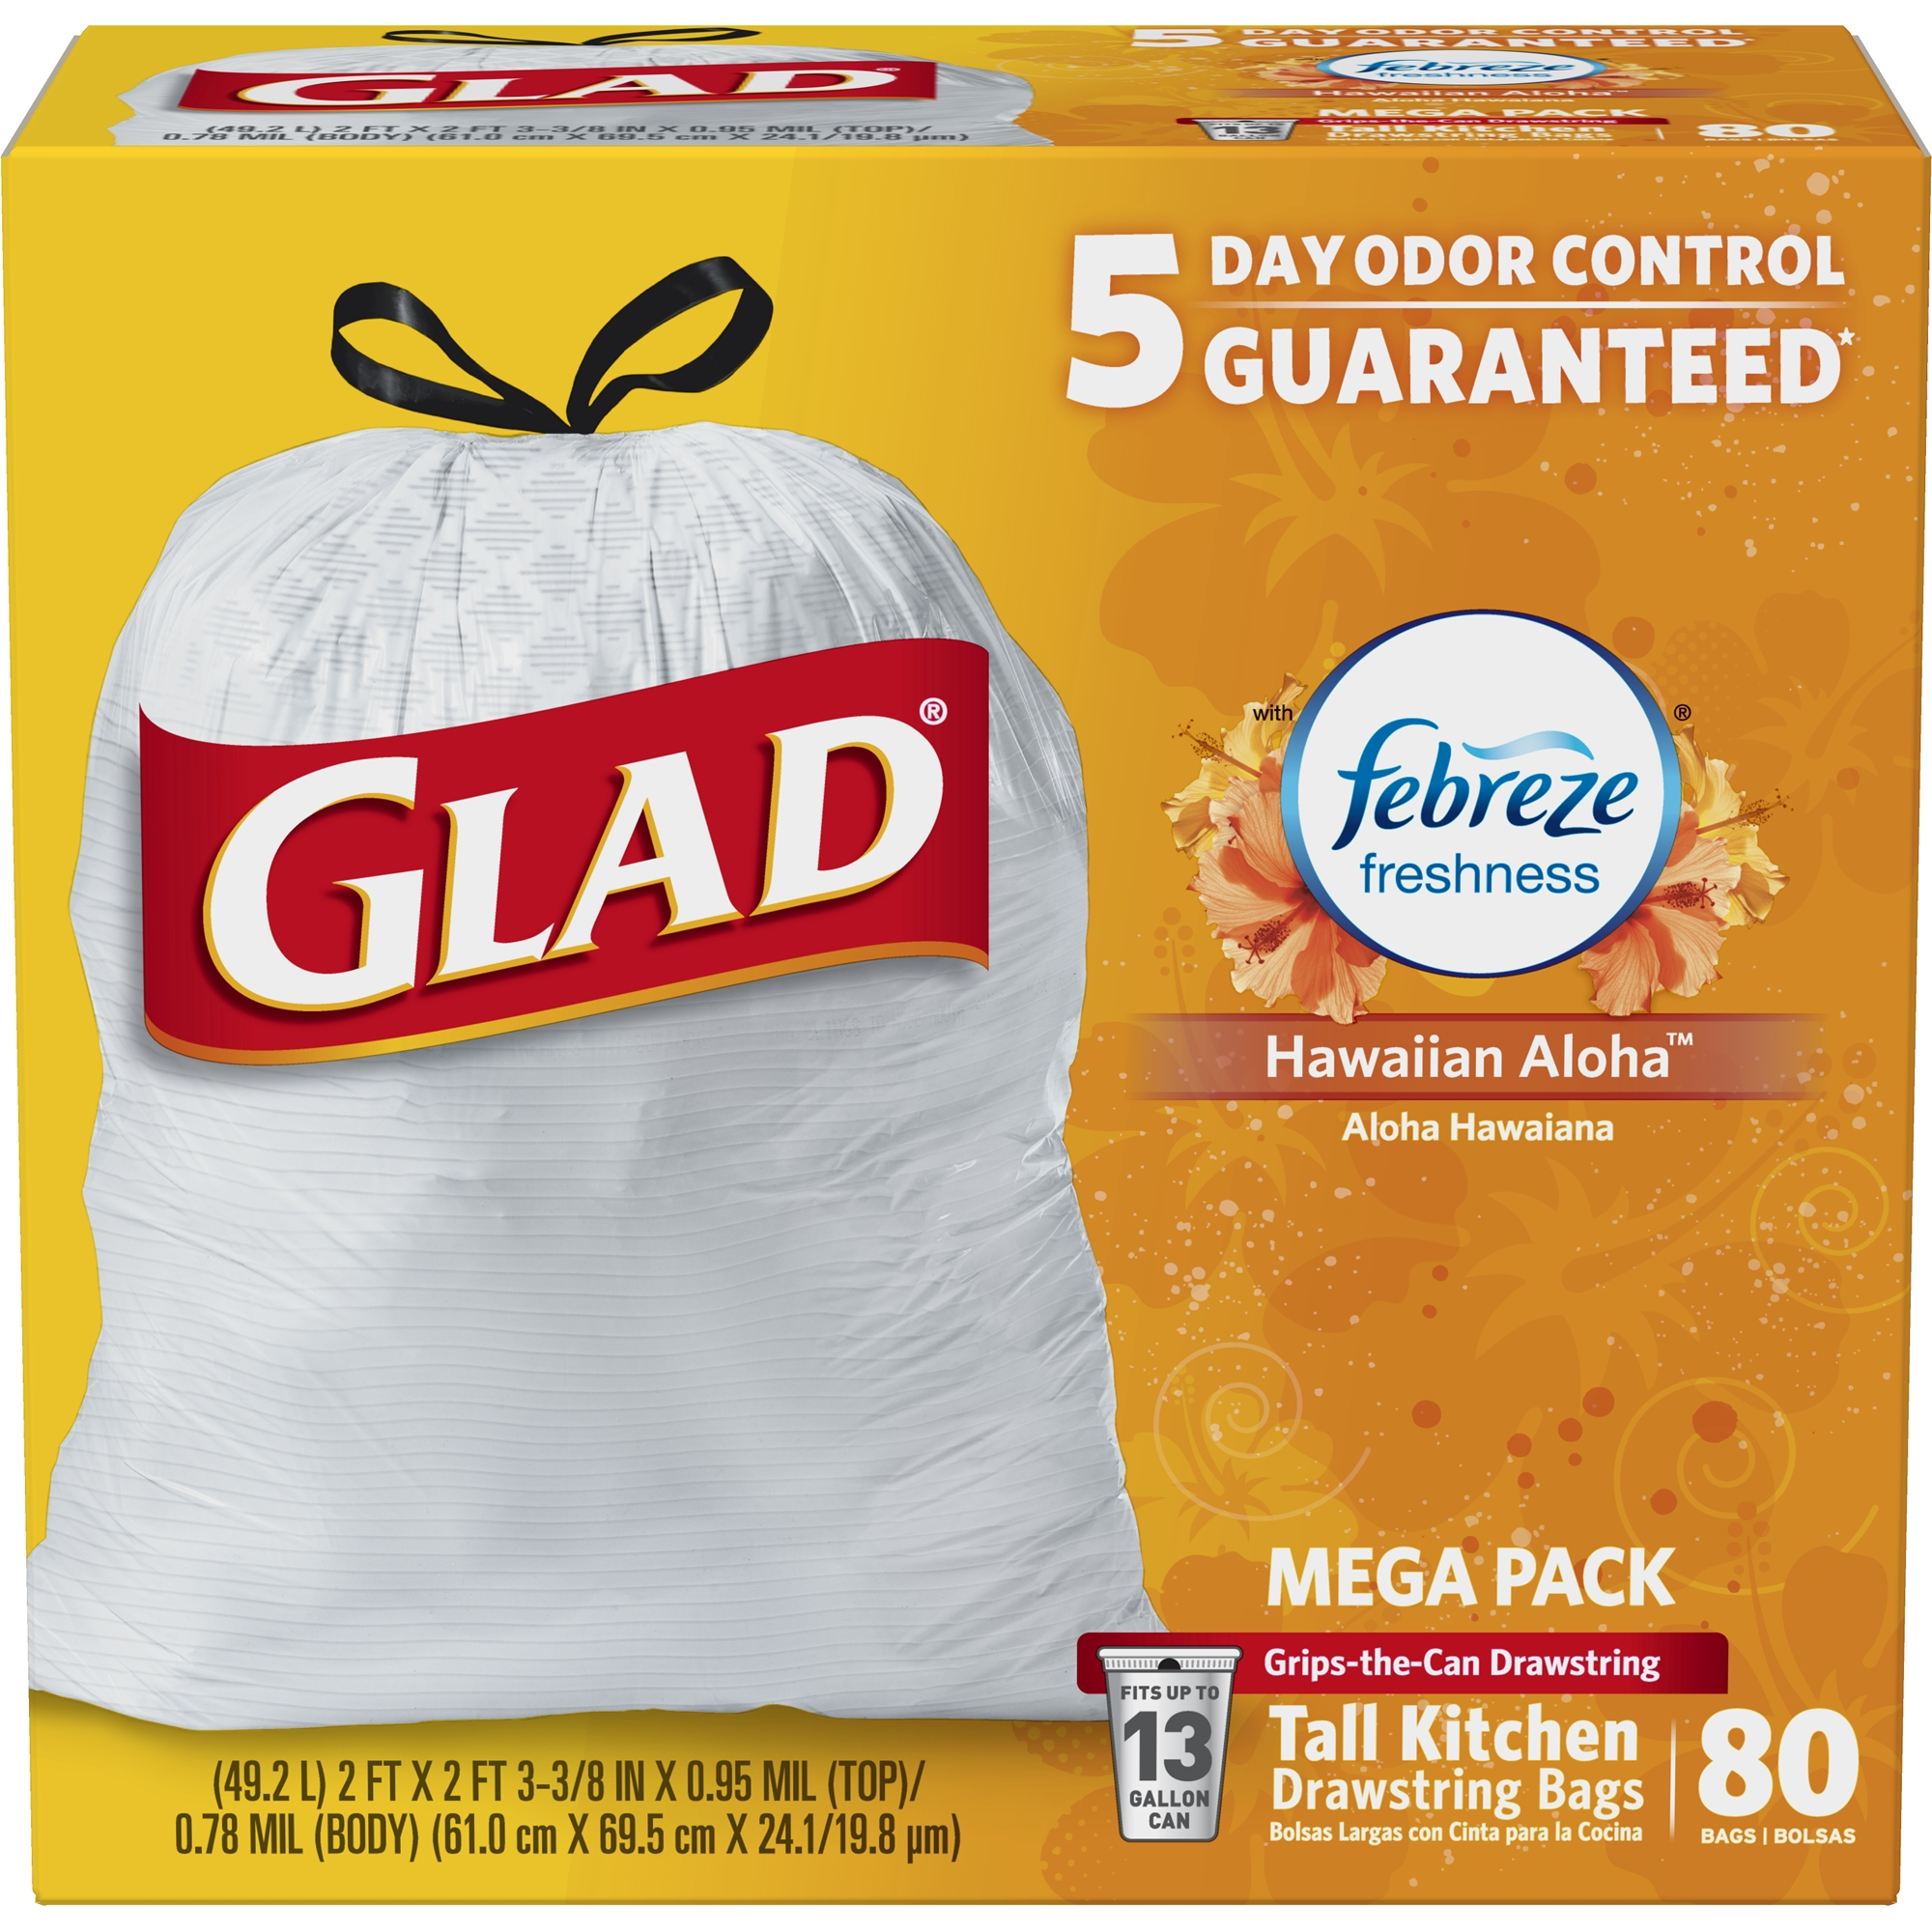 Glad OdorShield Tall Kitchen Drawstring Trash Bags - Febreze Hawaiian Aloha - 13 Gallon - 80 ct